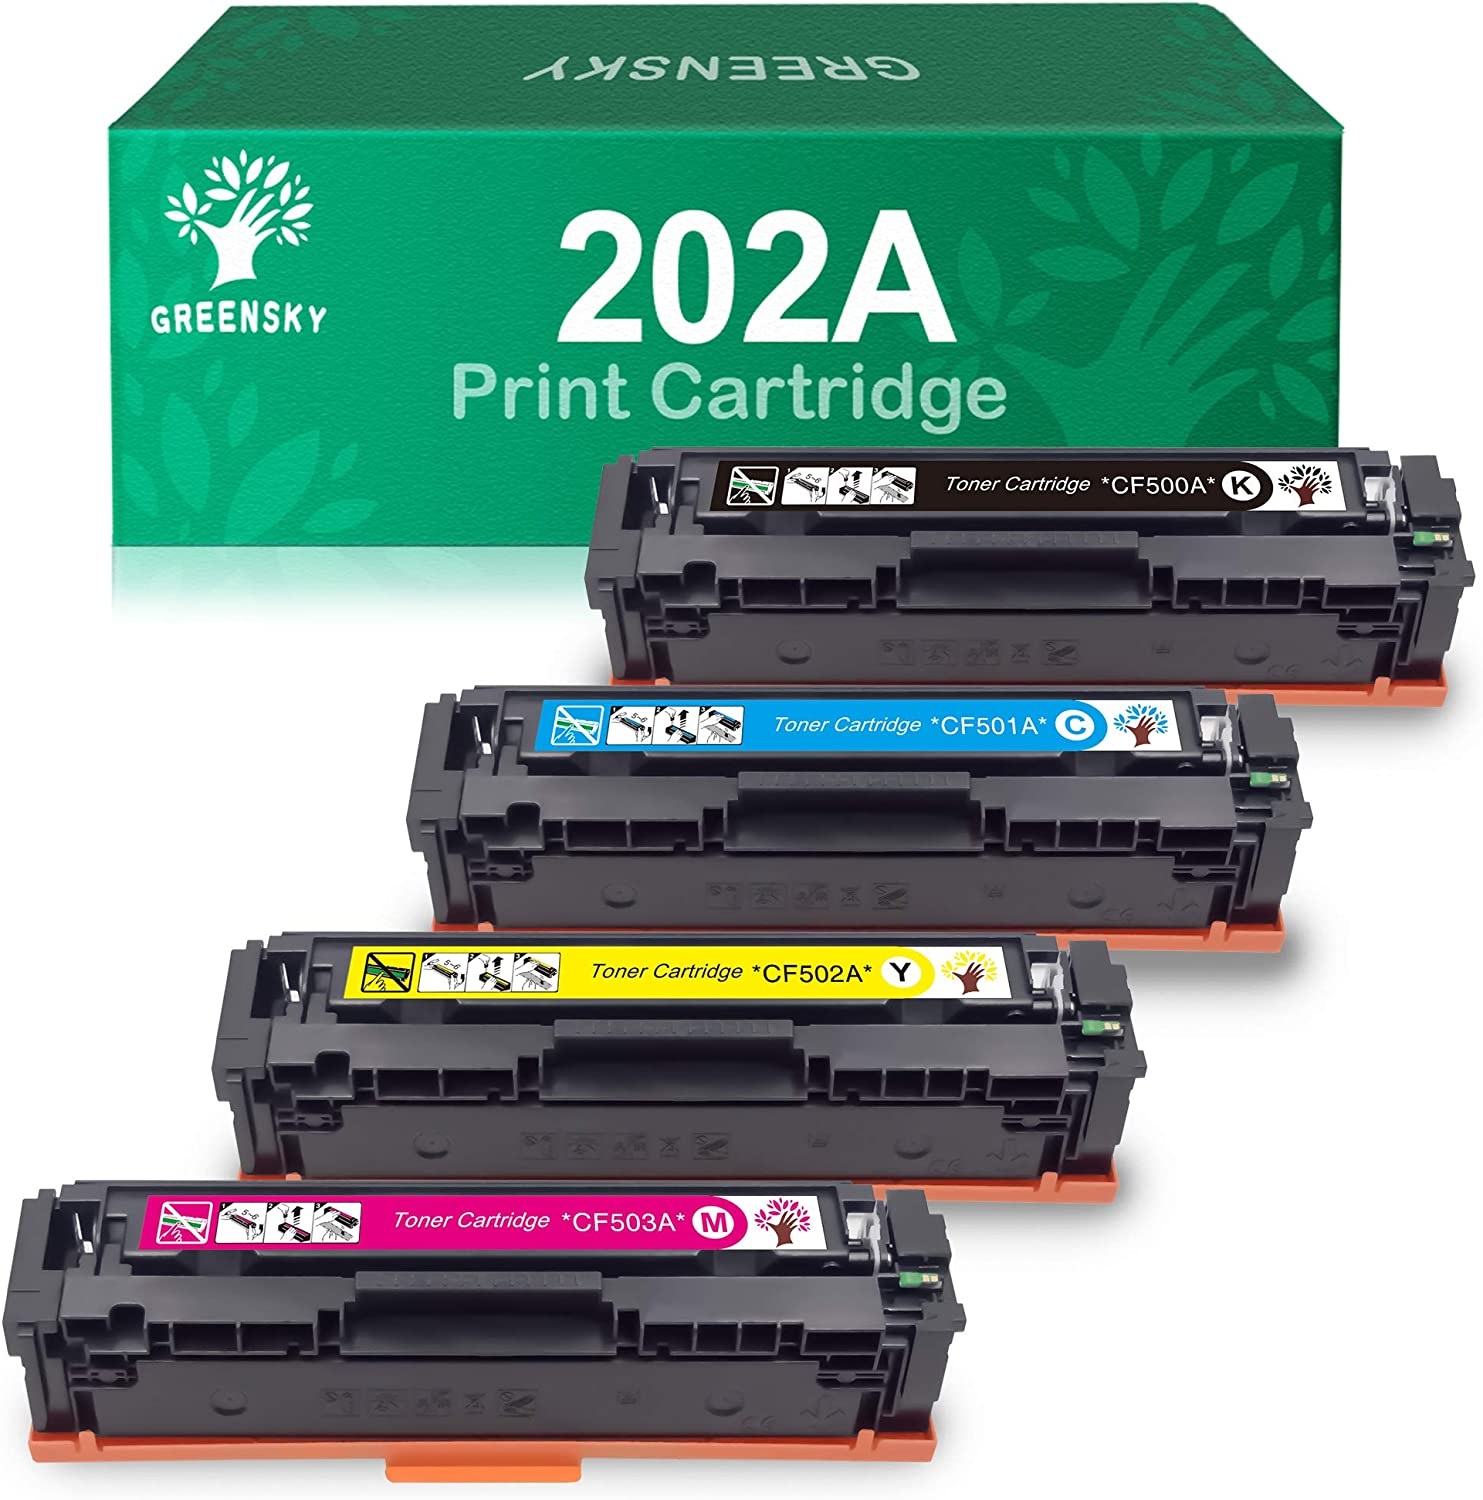 GREENSKY Compatible Toner Cartridge Replacement for HP 202A M281fdw CF500A for HP Laserjet Pro MFP M281fdw M254dw M281cdw M281dw M280nw CF501A CF502A CF503A Printer (BCMY, 4-Pack)